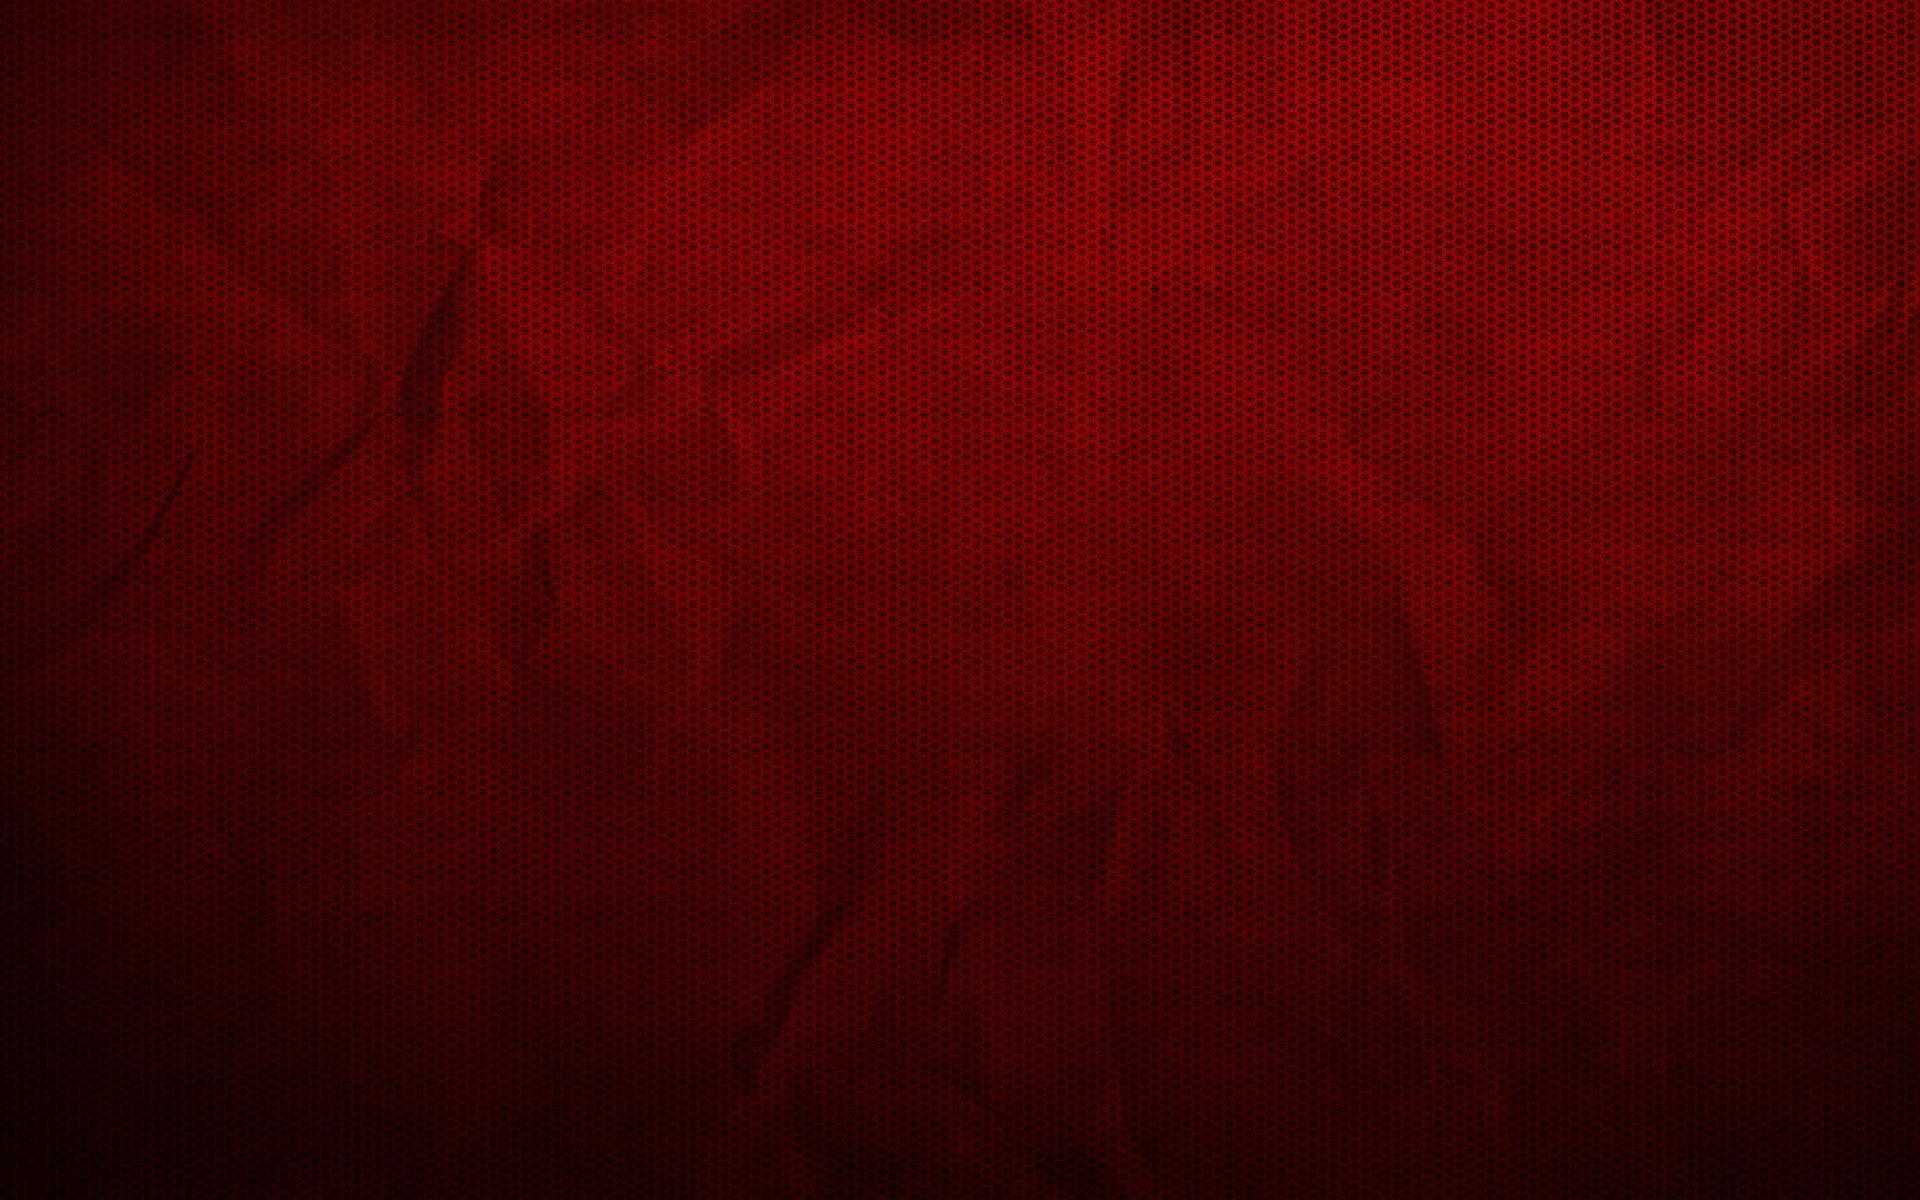 Plain Red Background Download Free Amazing High Resolution